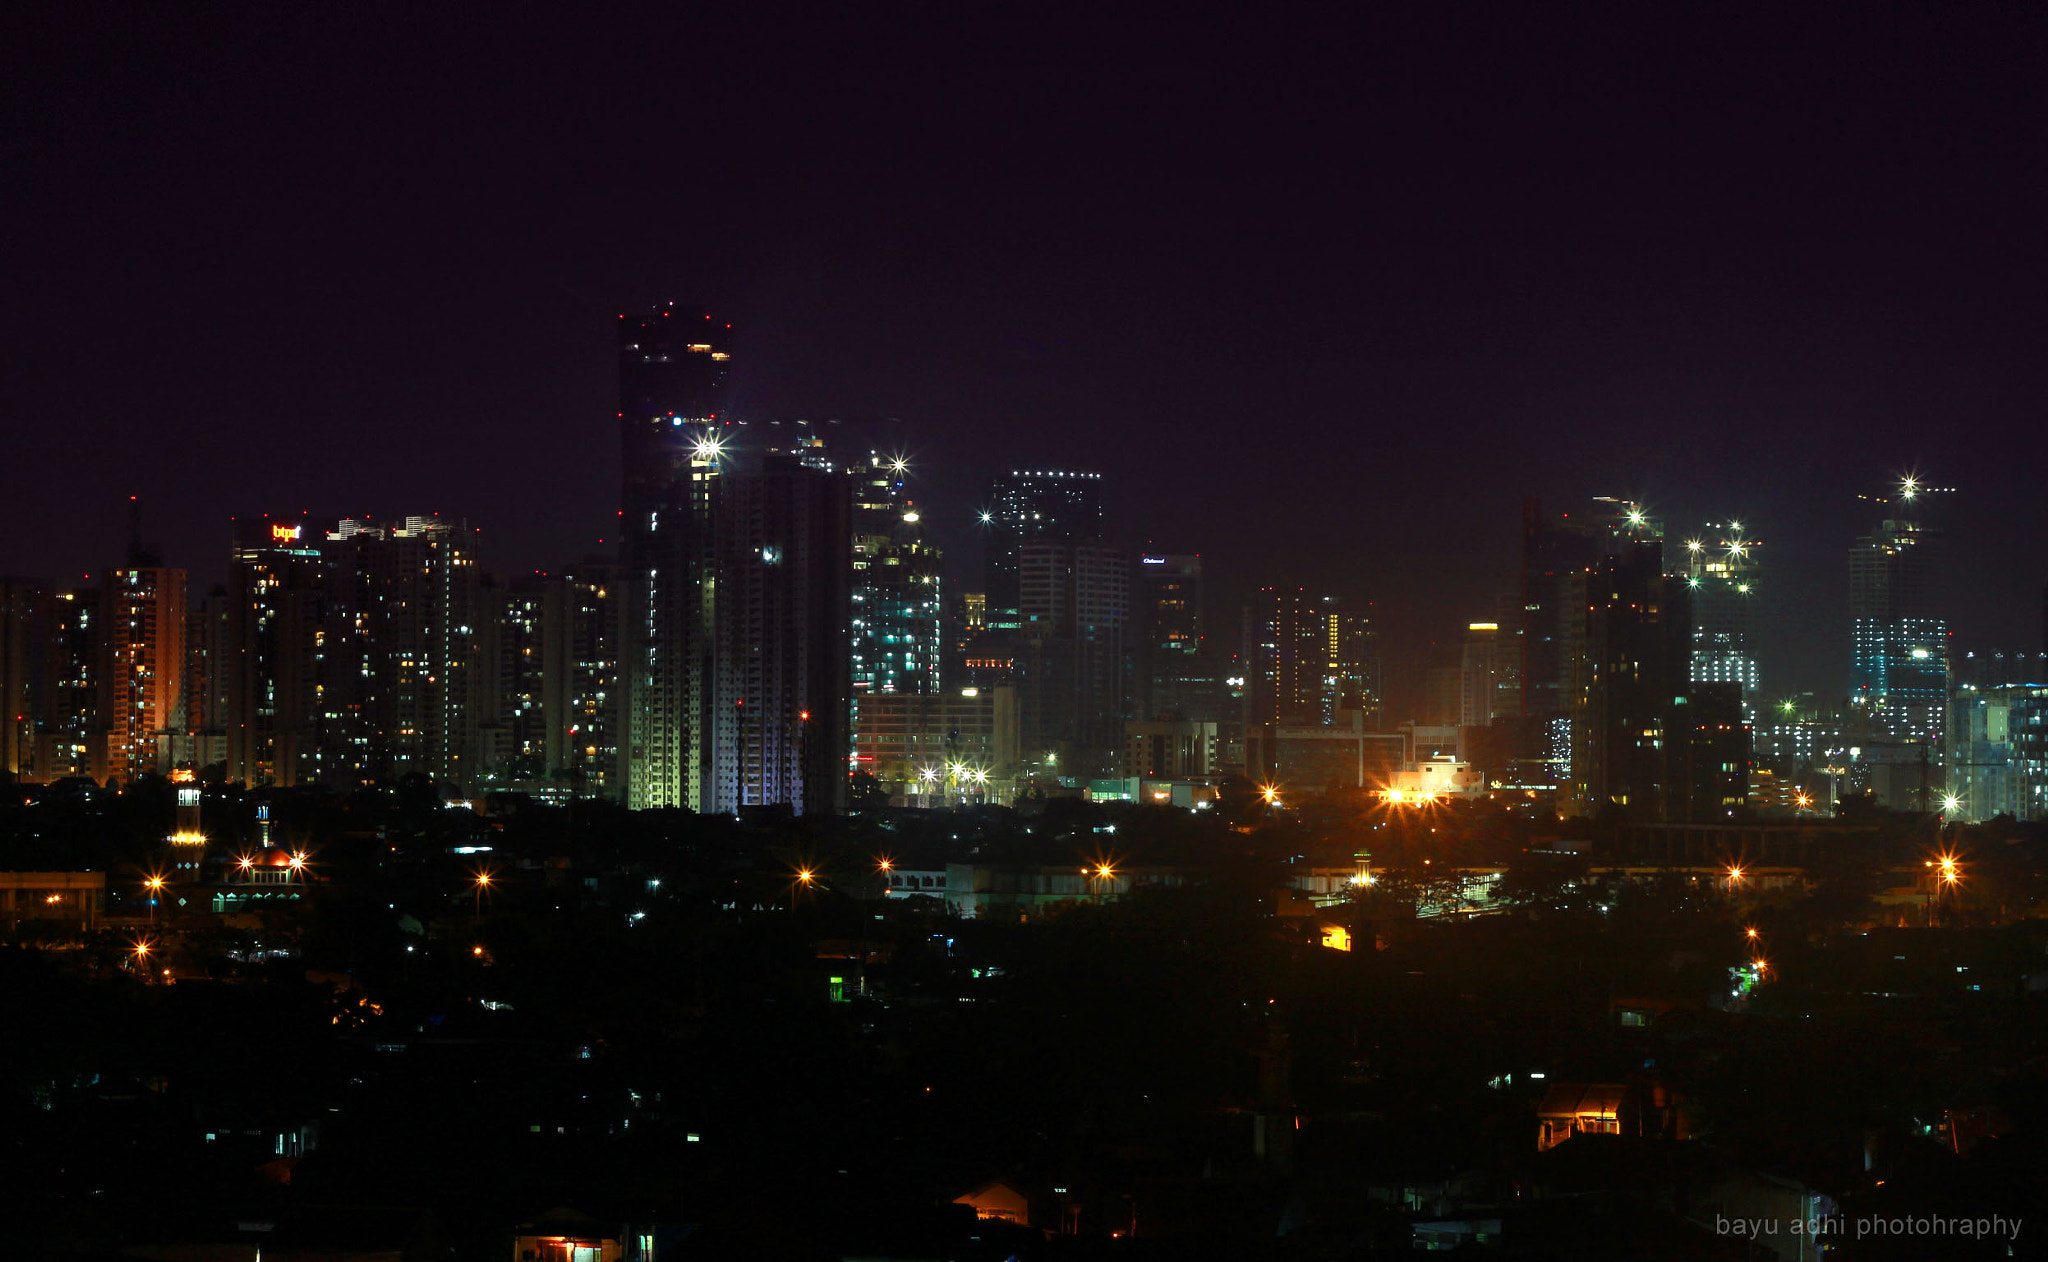 Photograph My City by Bayu Adhi on 500px